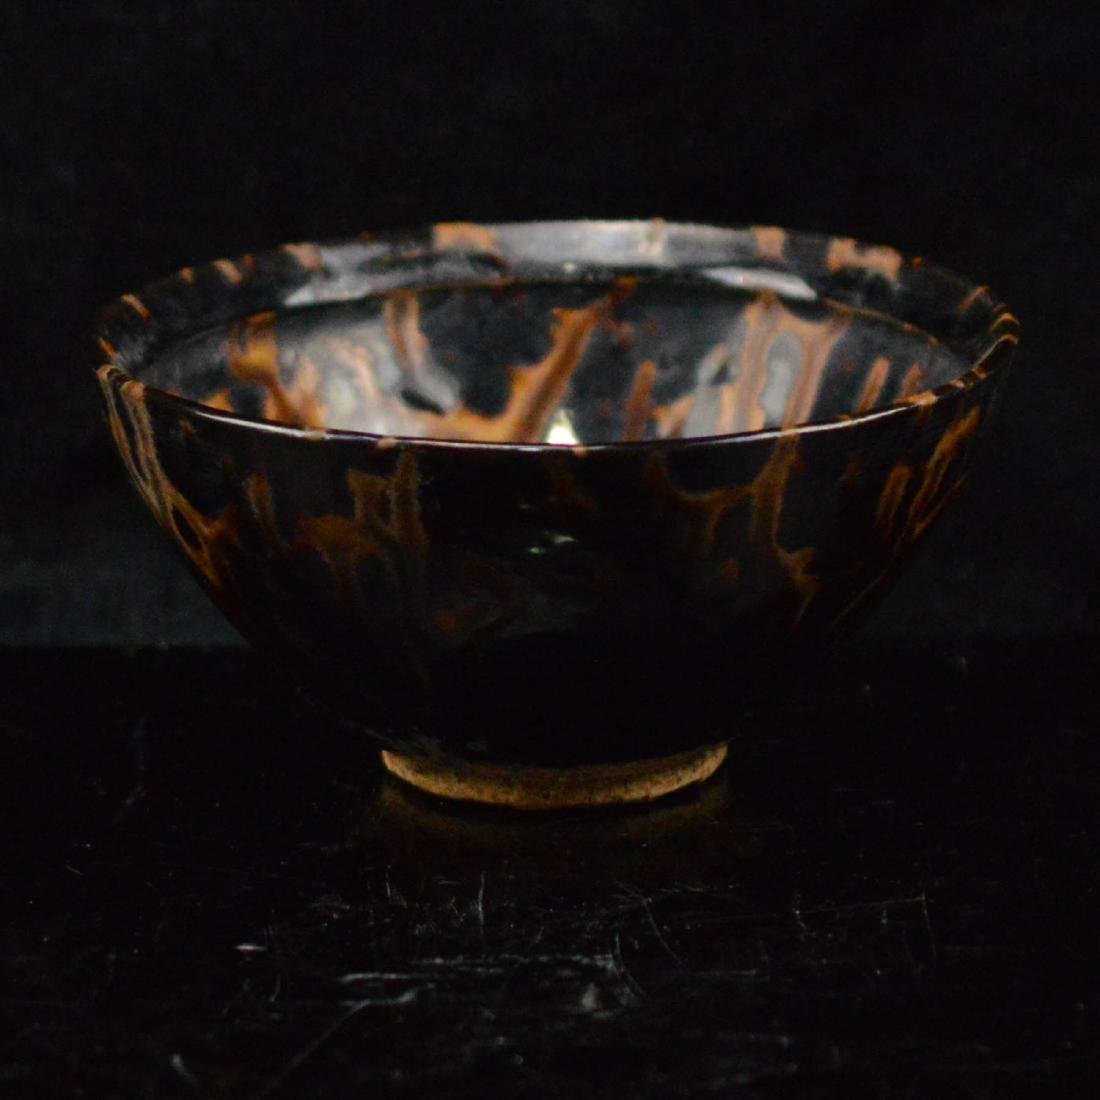 SongGe Yao style Porcelain Bowl